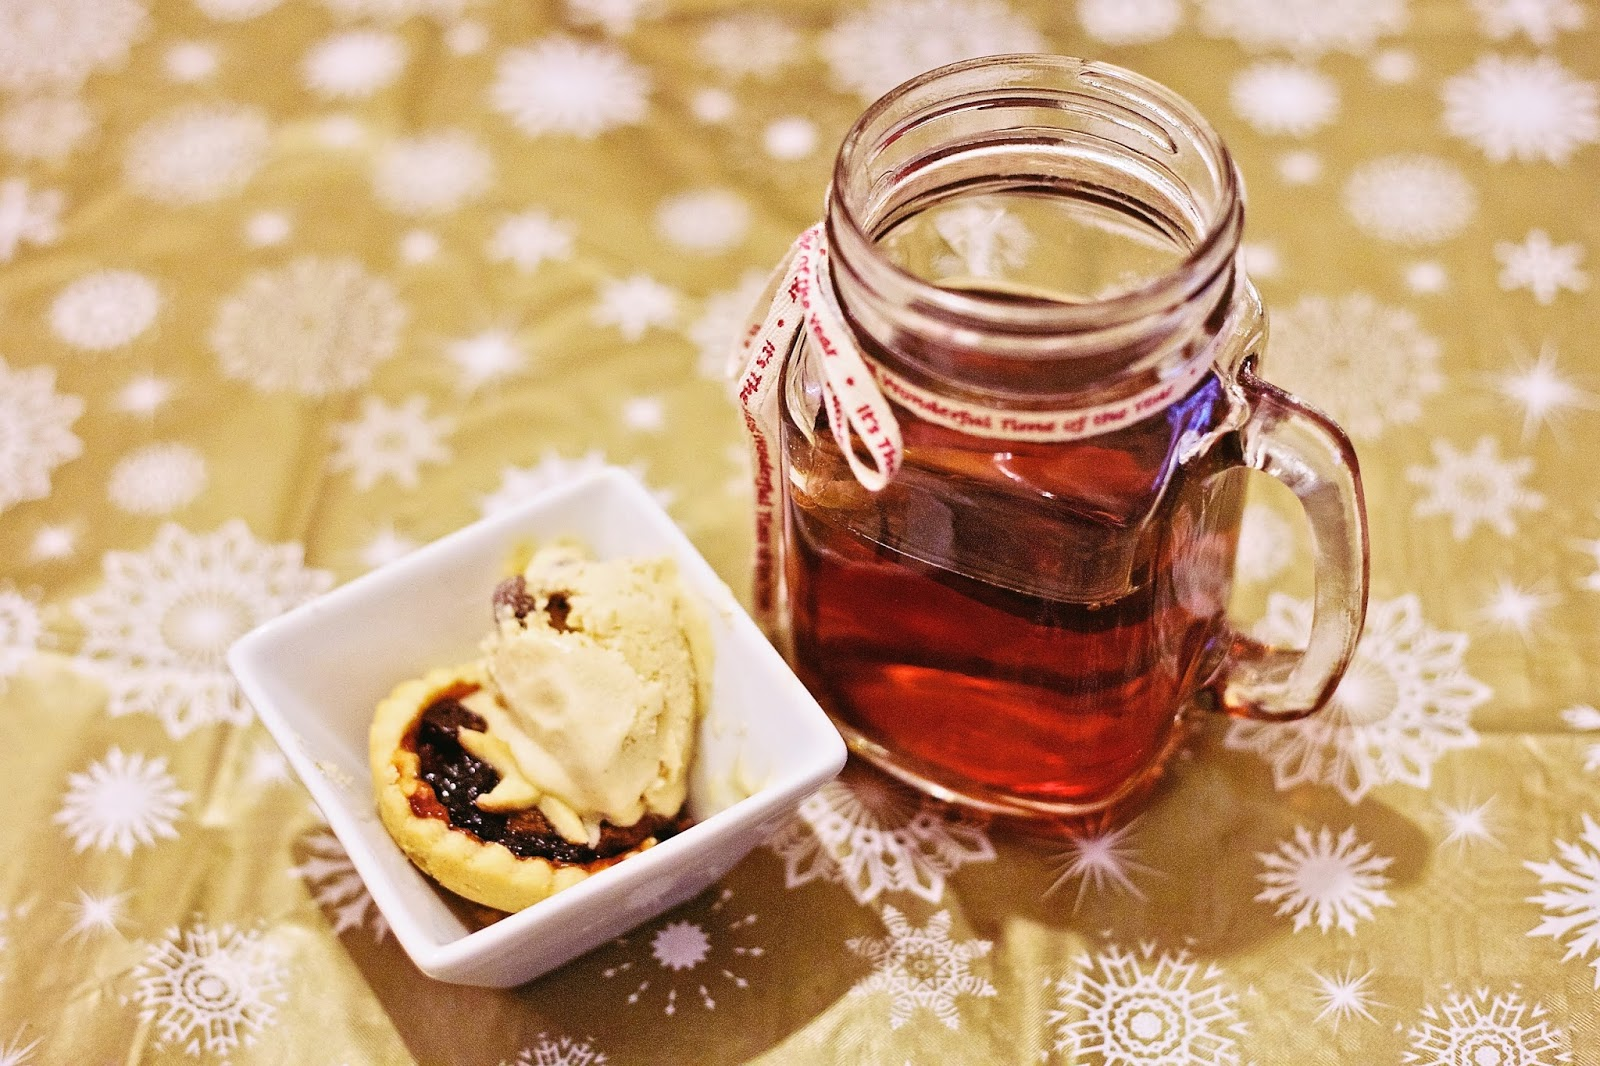 Cider in Mason Jar with Mince Pie and Ice Cream